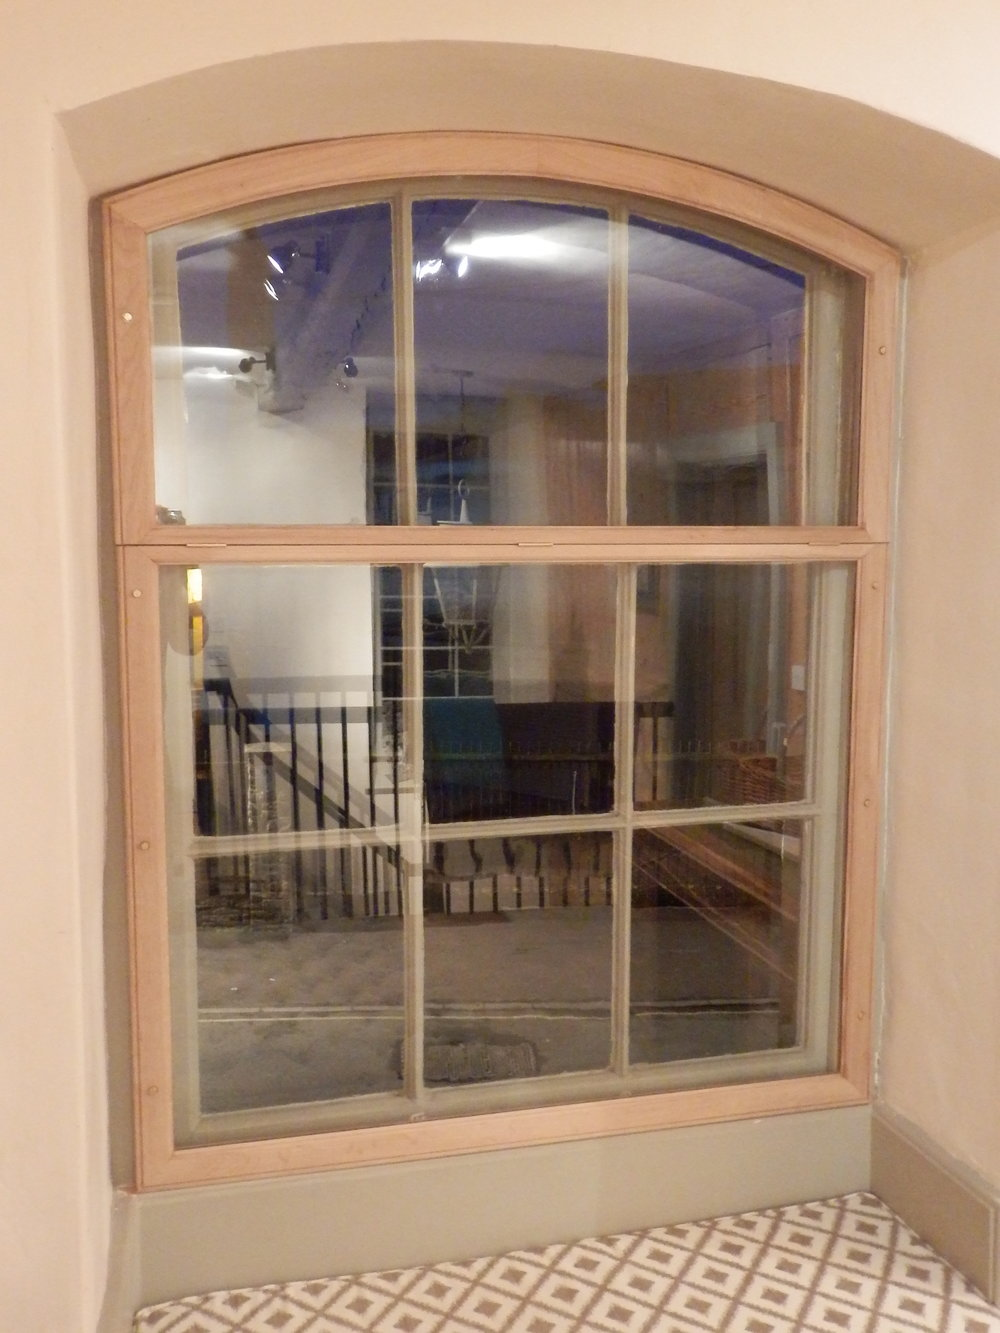 A curved landing window also needed secondary glazing.